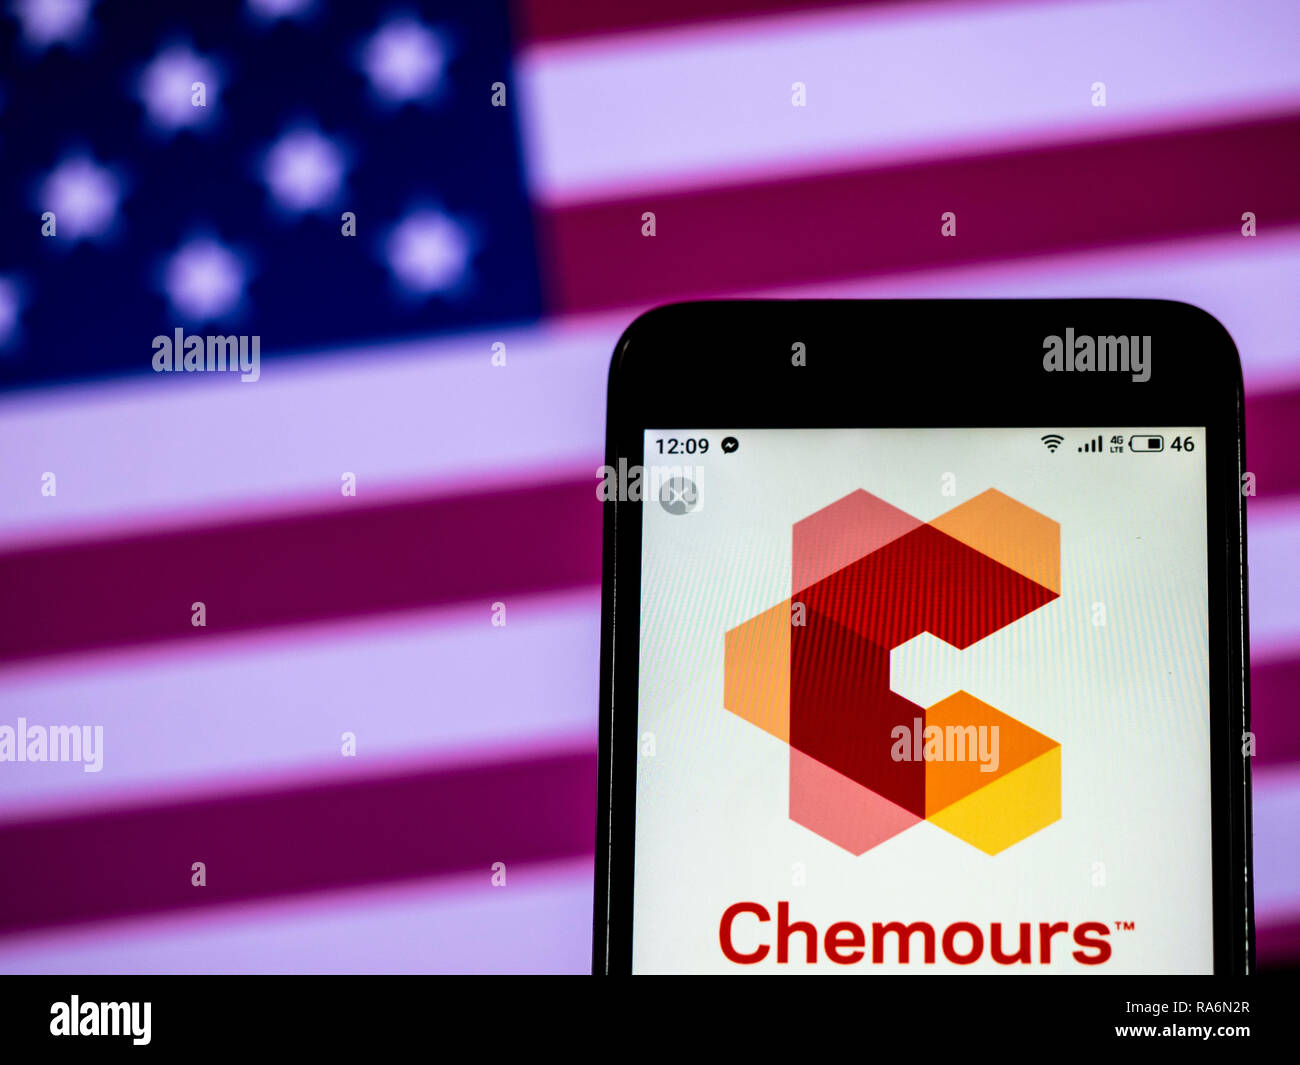 The Chemours Company Chemicals company logo seen displayed